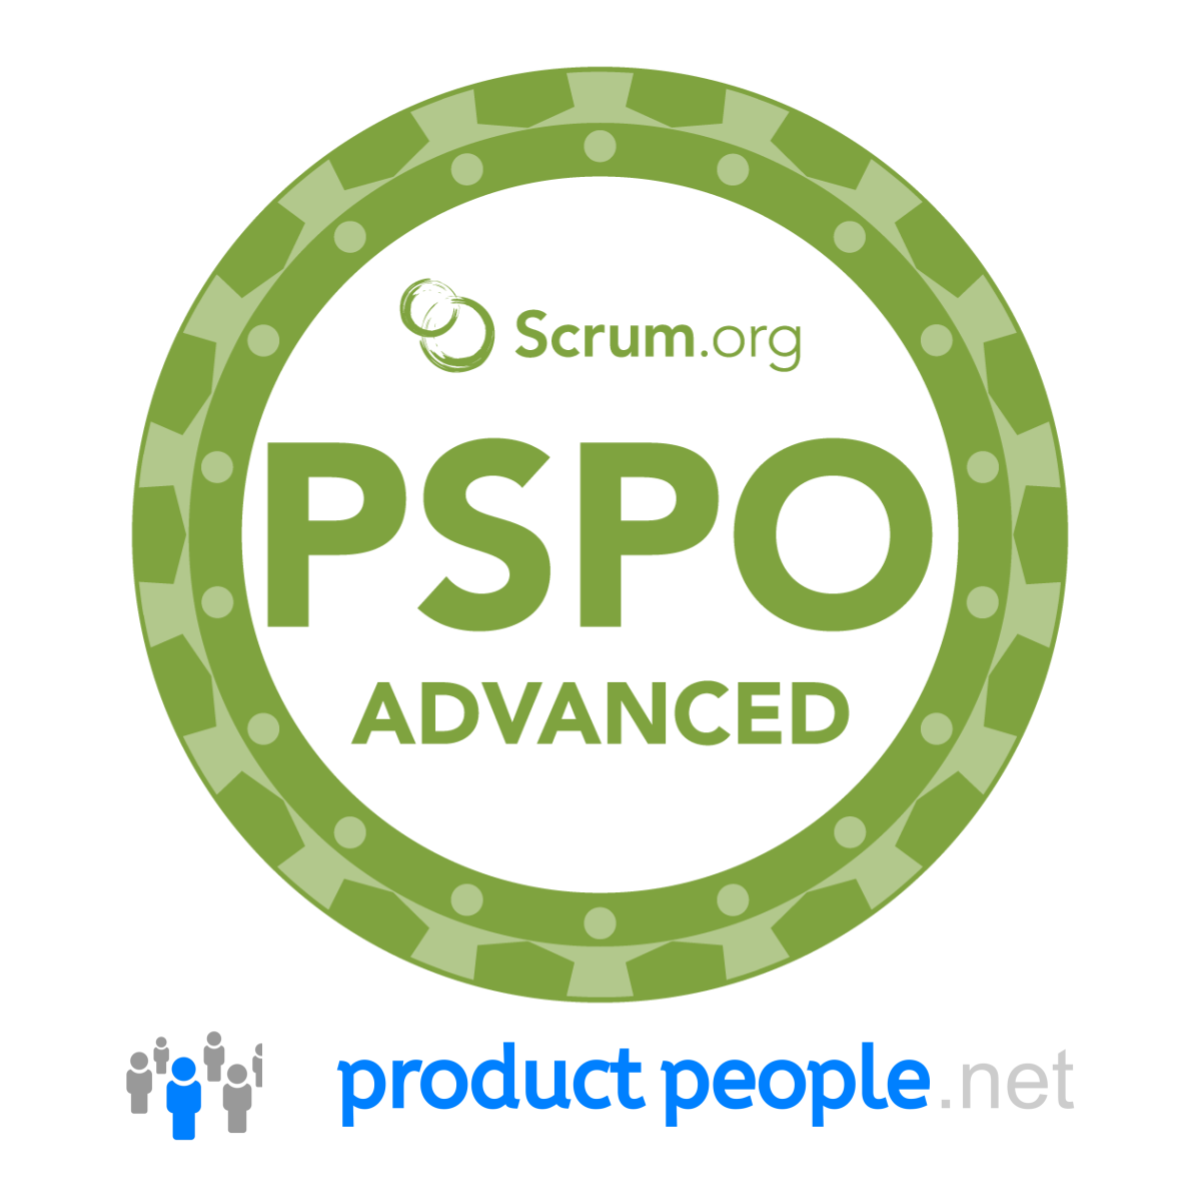 PSPO-A - Professional Scrum Product Owner Advanced - Scrum.org - powered by productpeople.net